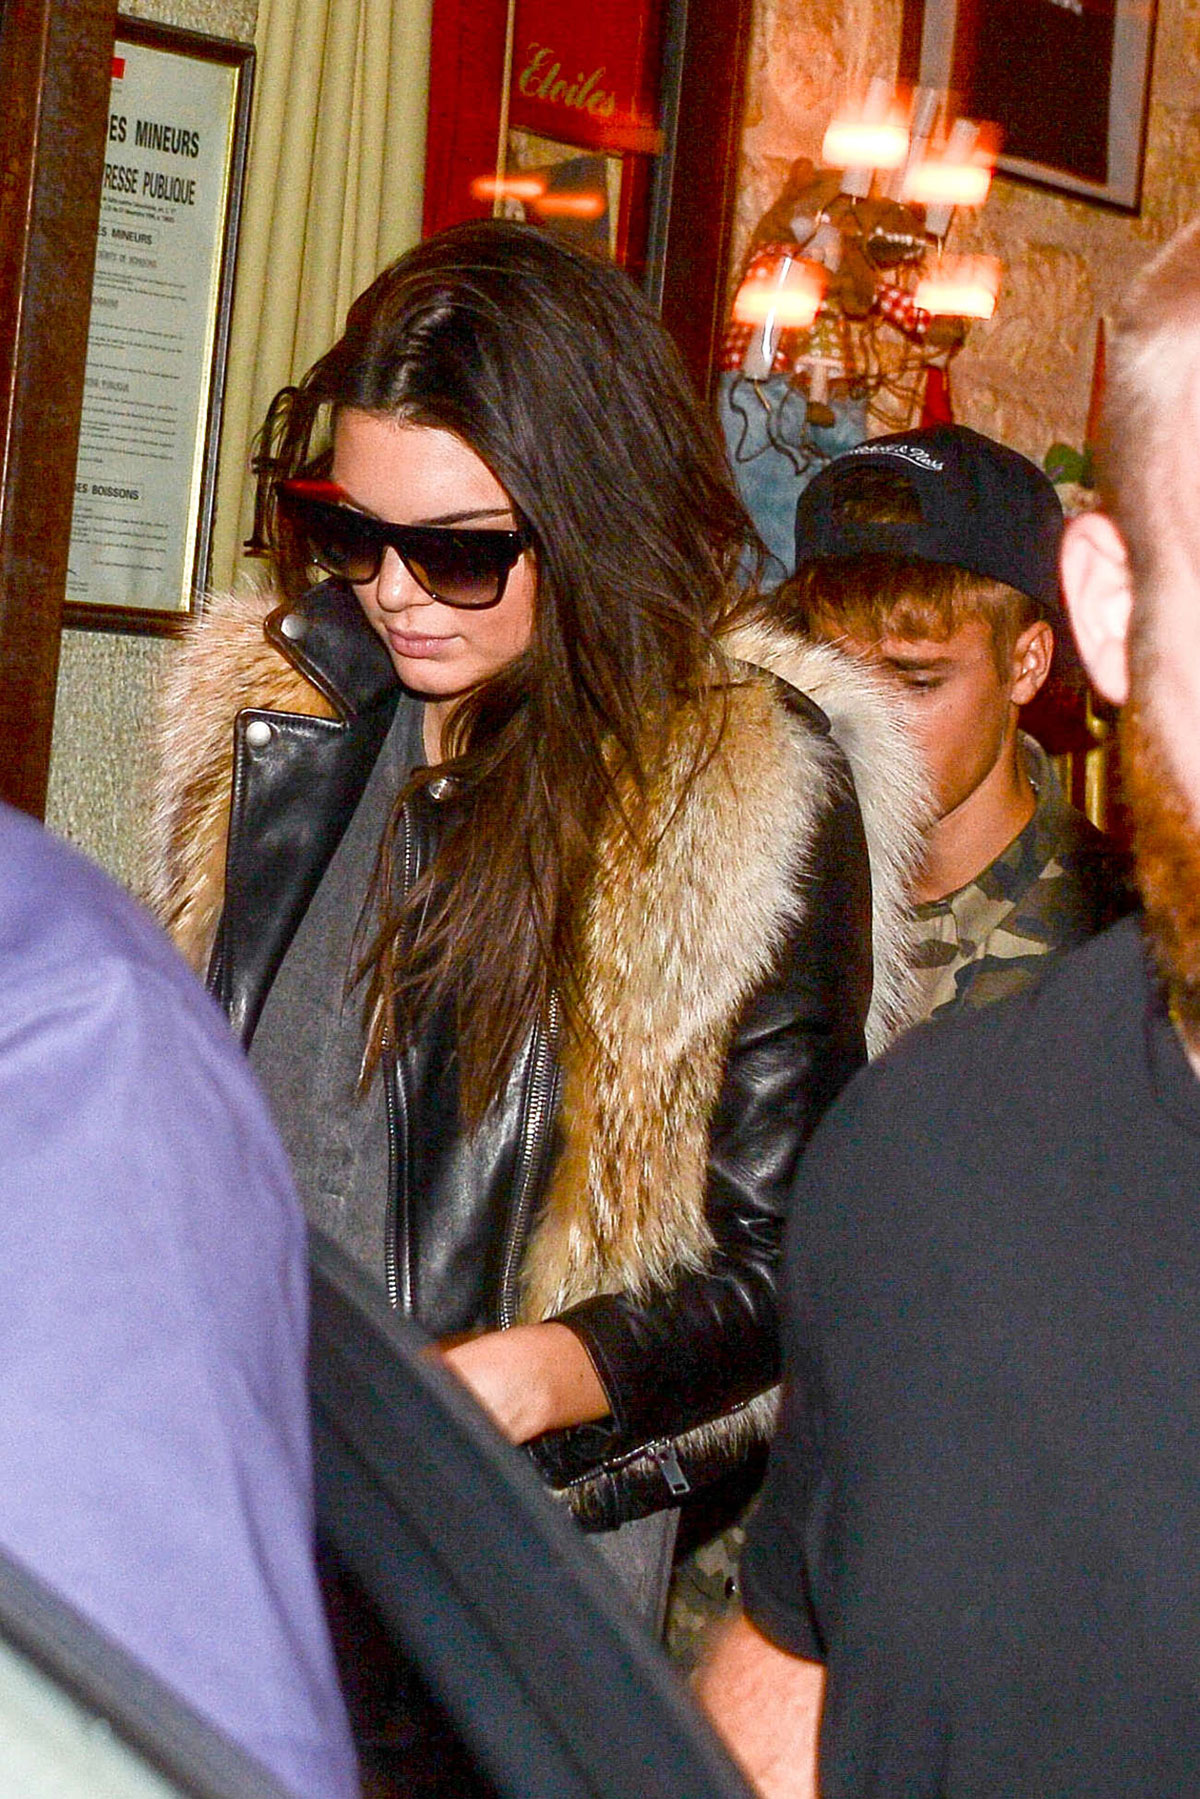 Kendall Jenner was spotted with Justin Bieber leaving Ferdi Restaurant